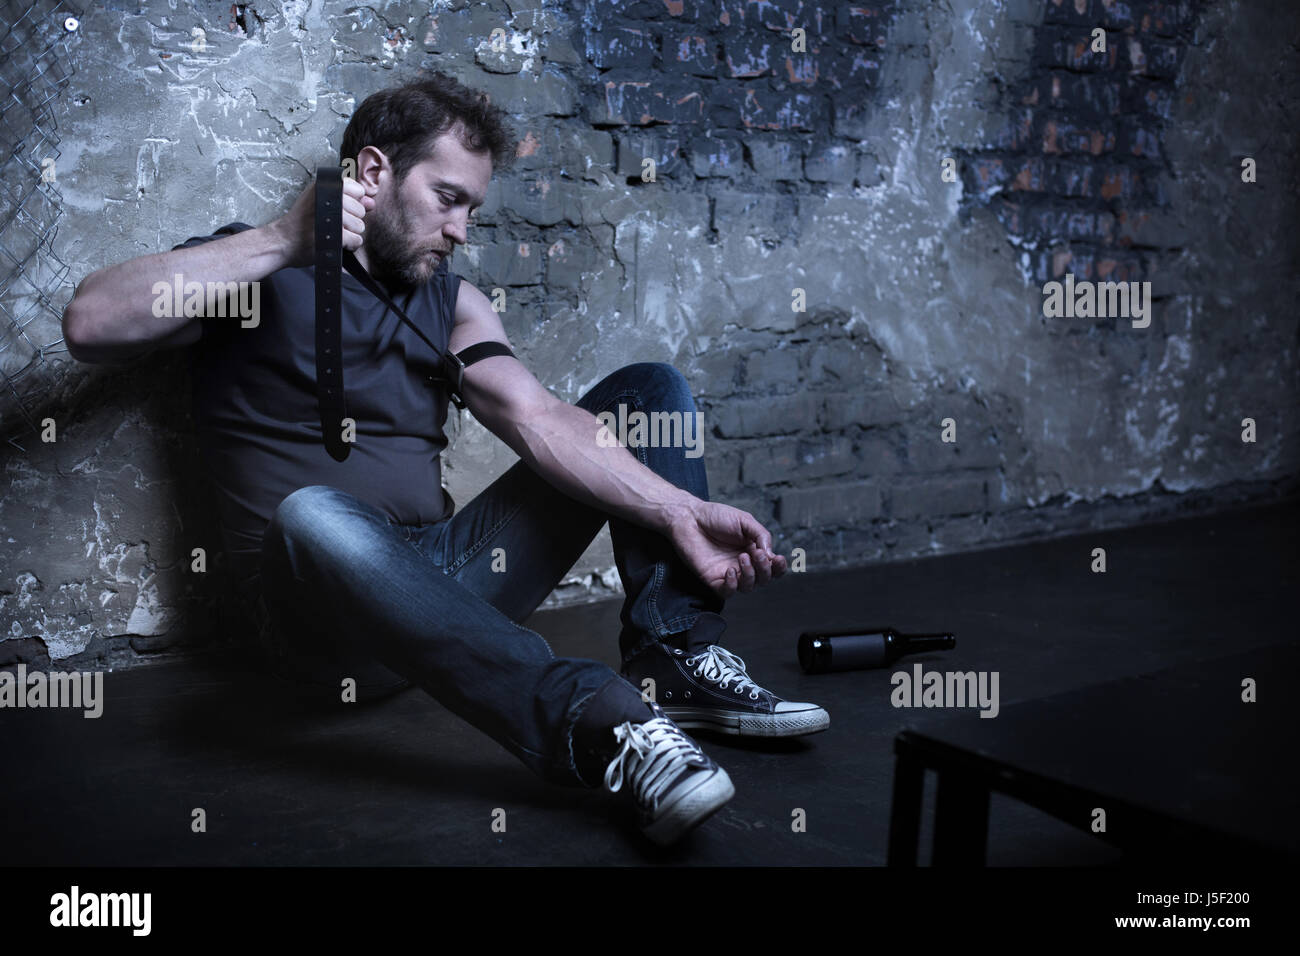 Lonely dope user applying rubber band in the darkness - Stock Image